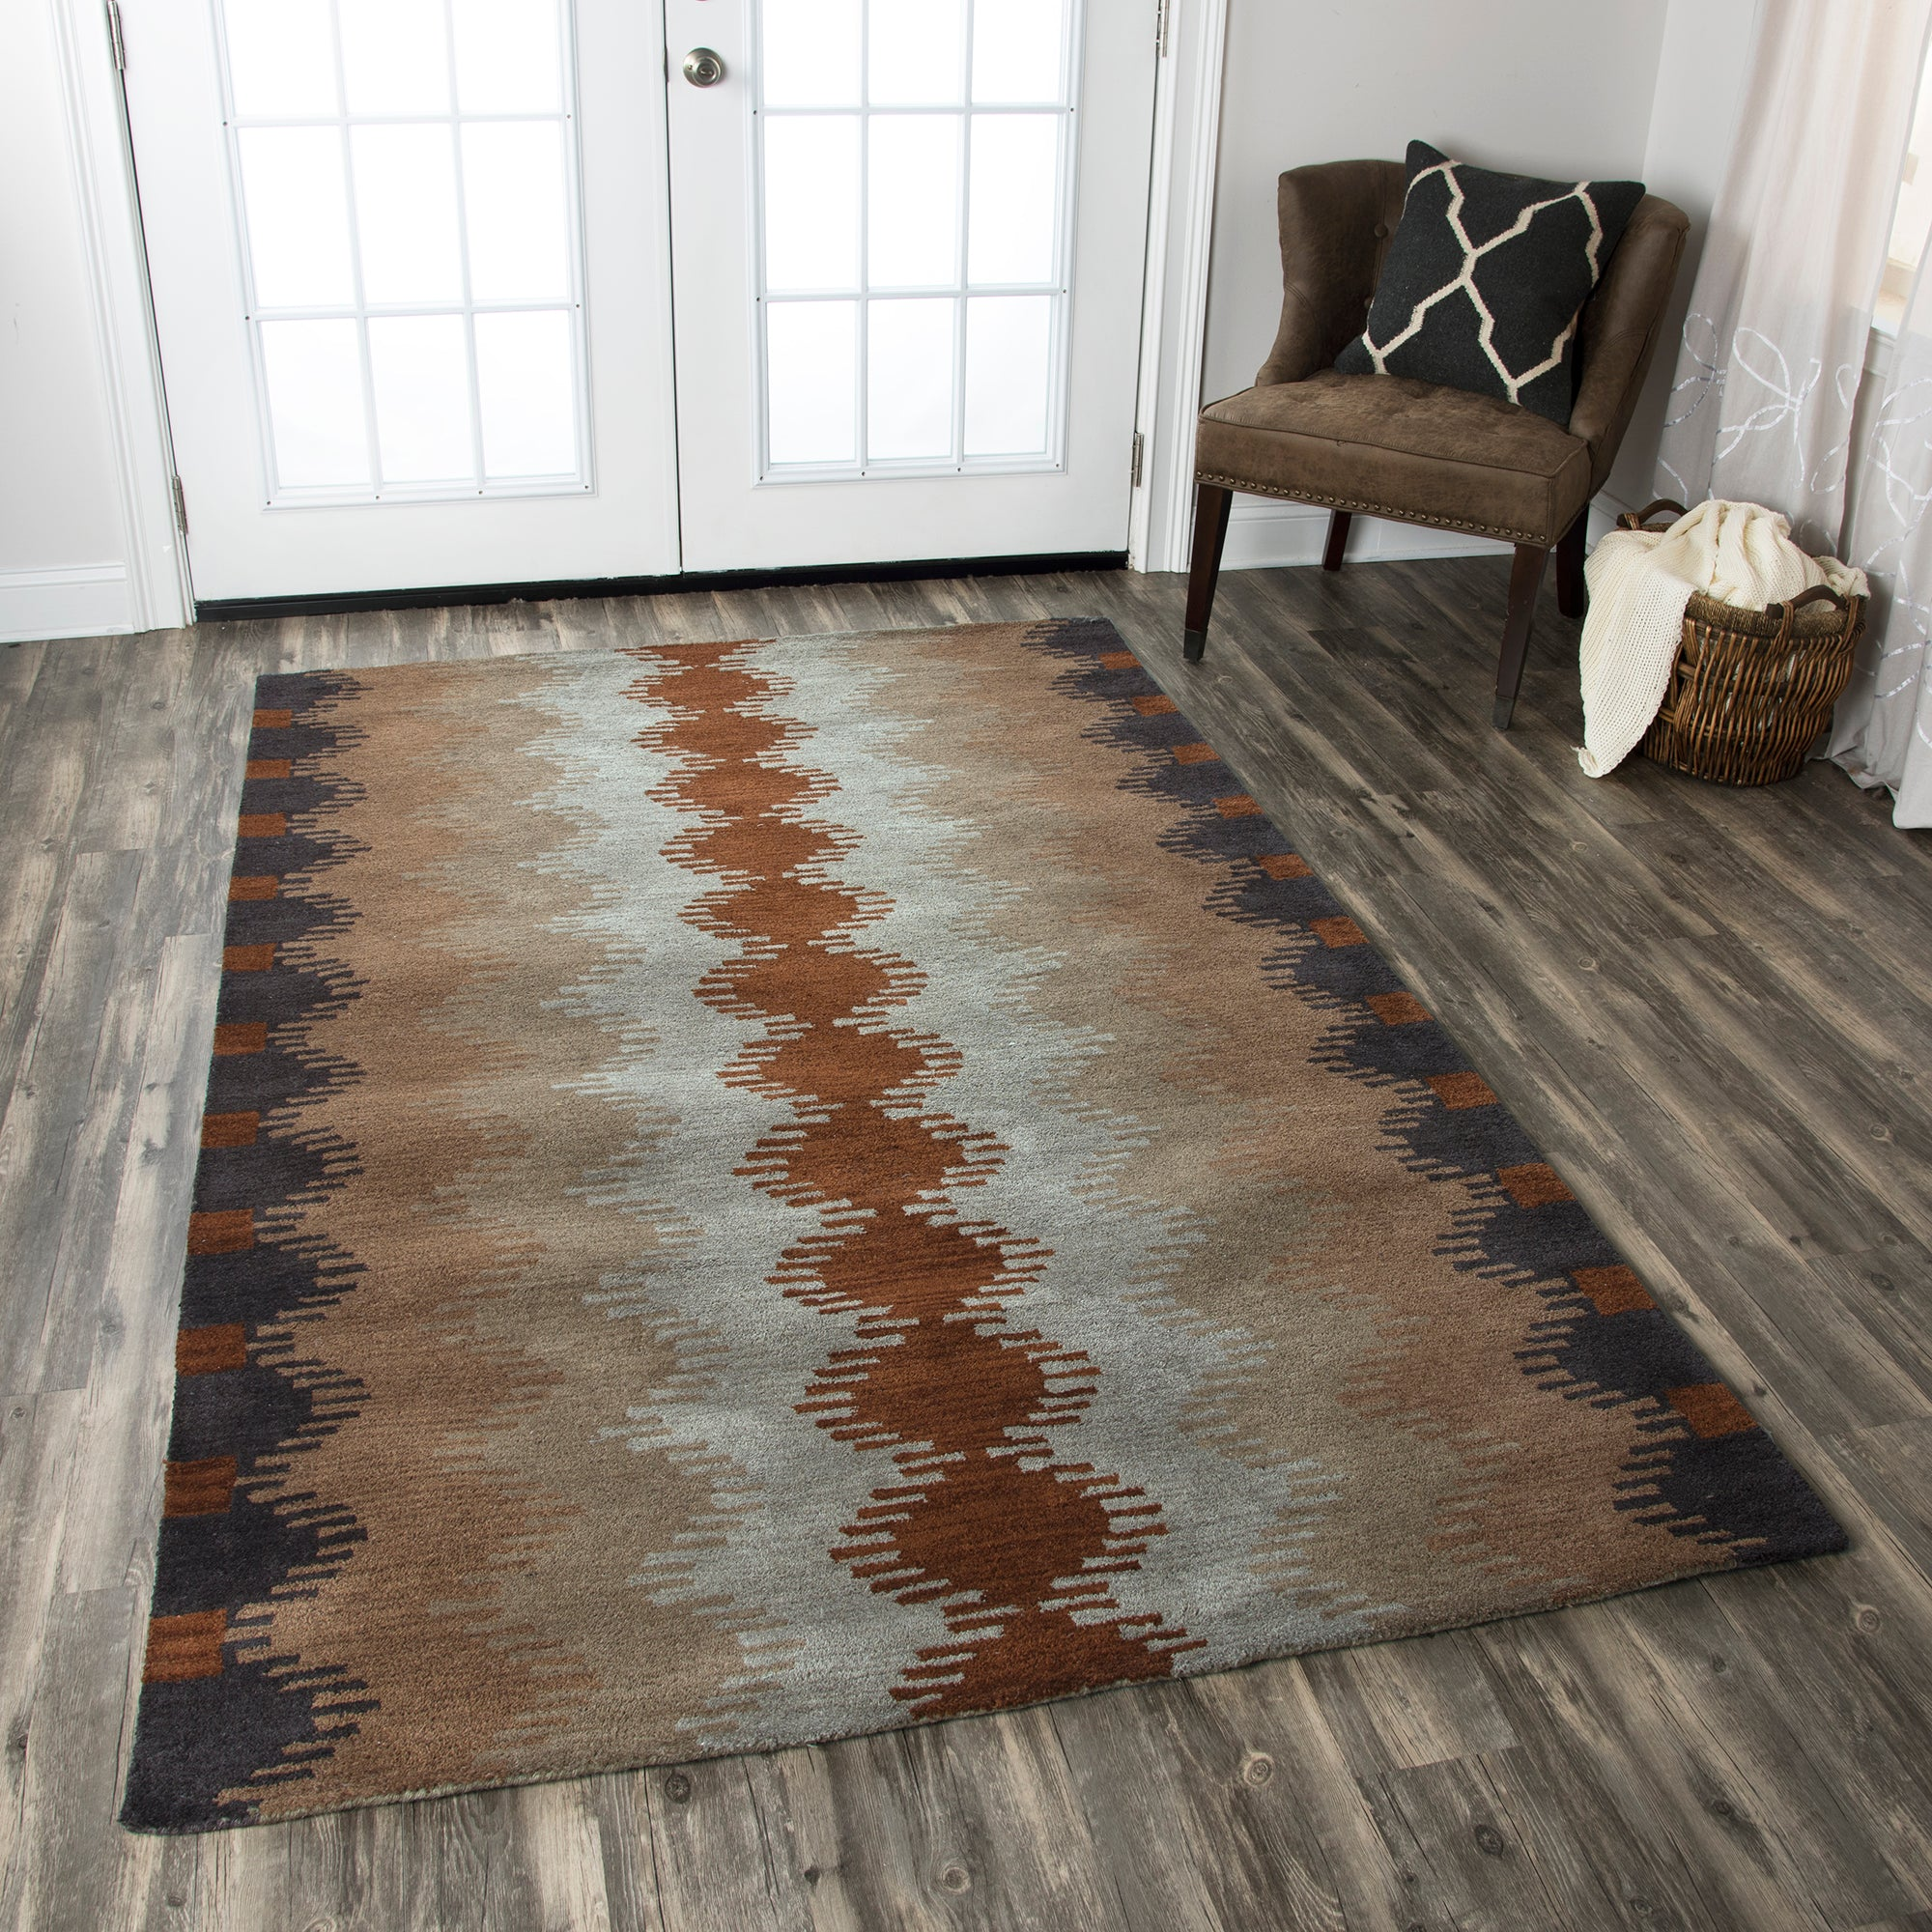 Rizzy Home Tumble Weed Loft TL9250 Multi-Colored Southwest/Tribal Area Rug